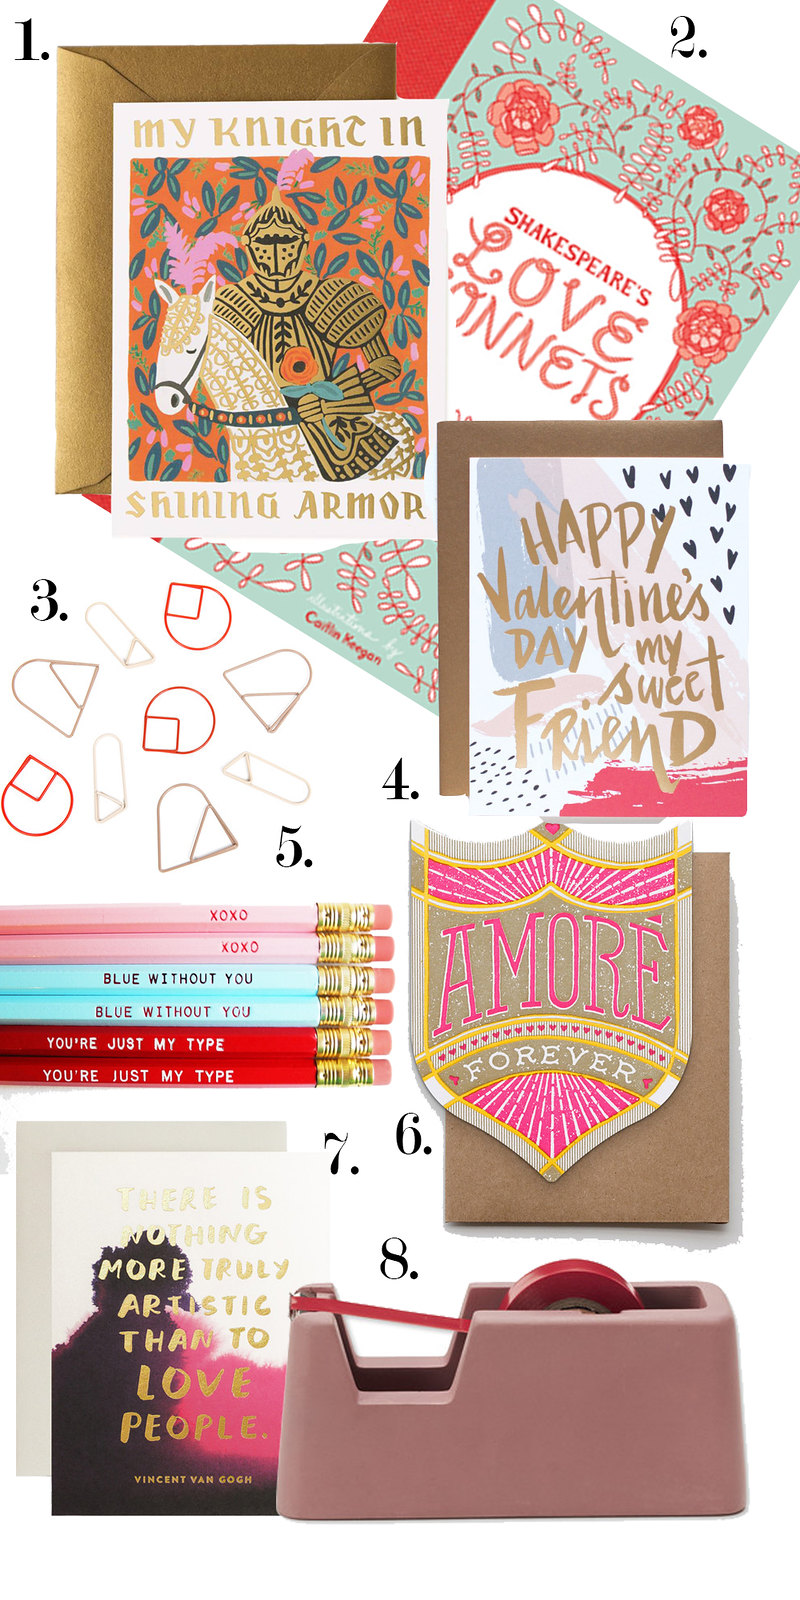 ValentineStationery